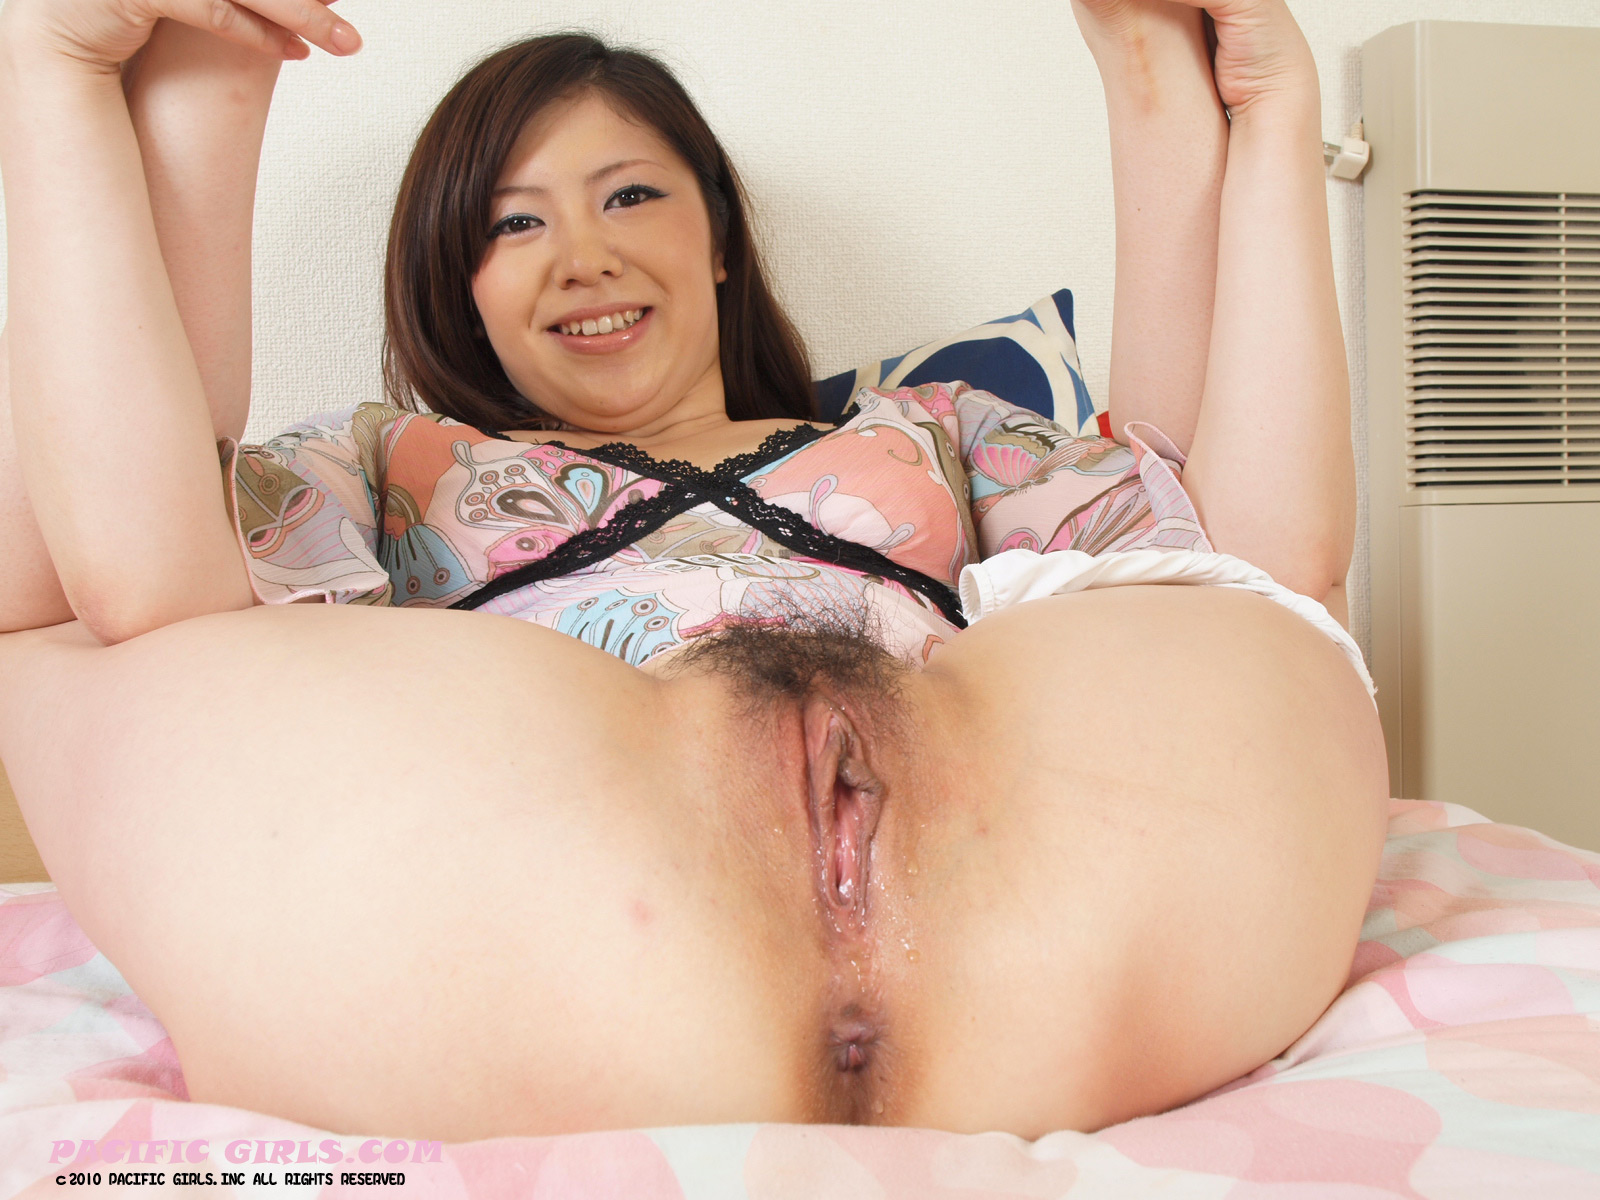 pacificgirls 680 Posted in Jun_2 Pacificgirls